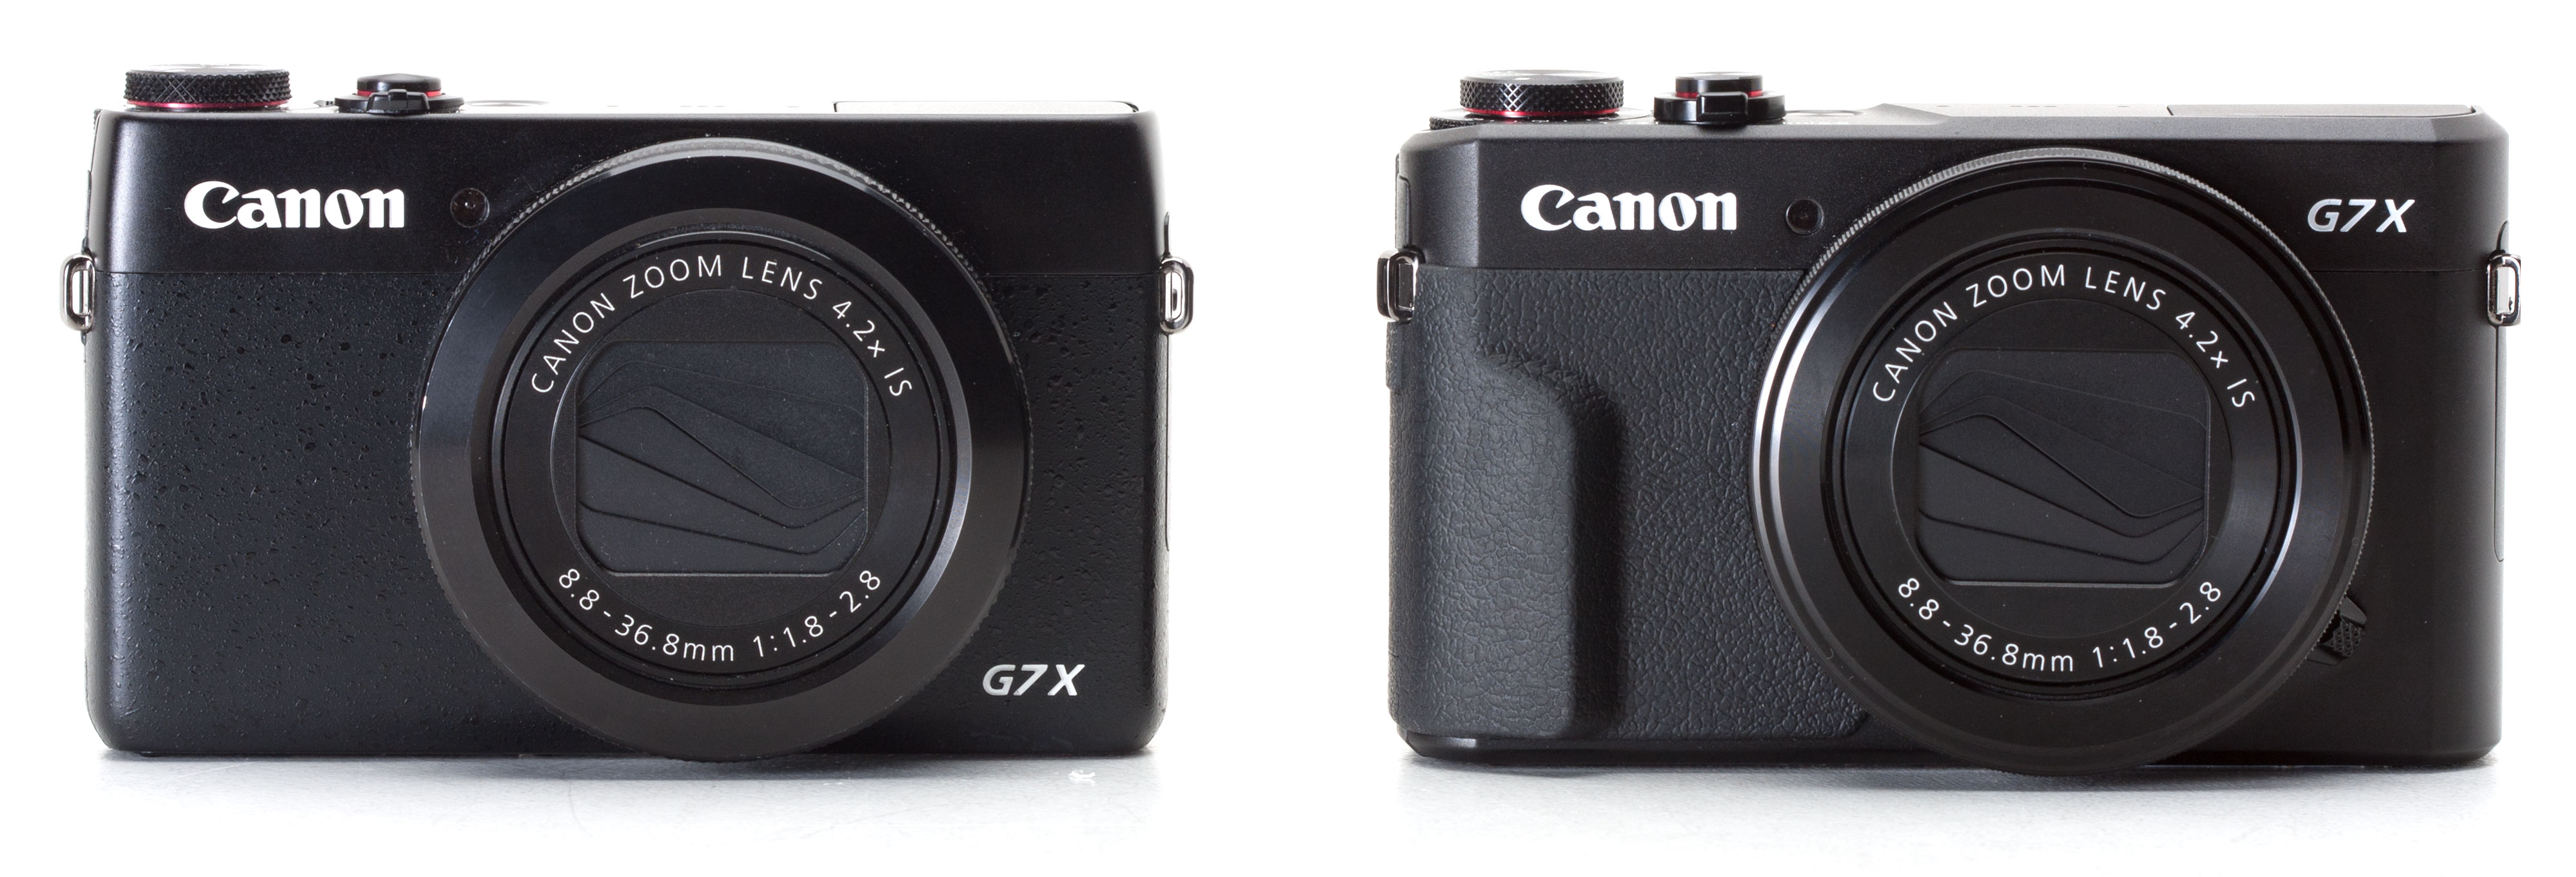 Second Time Around: Canon PowerShot G7 X Mark II Review: Digital ...